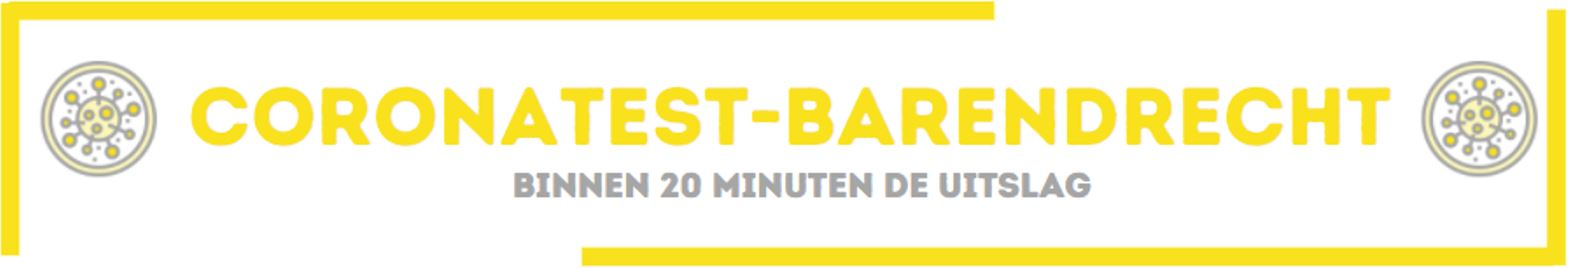 Coronatest Barendrecht